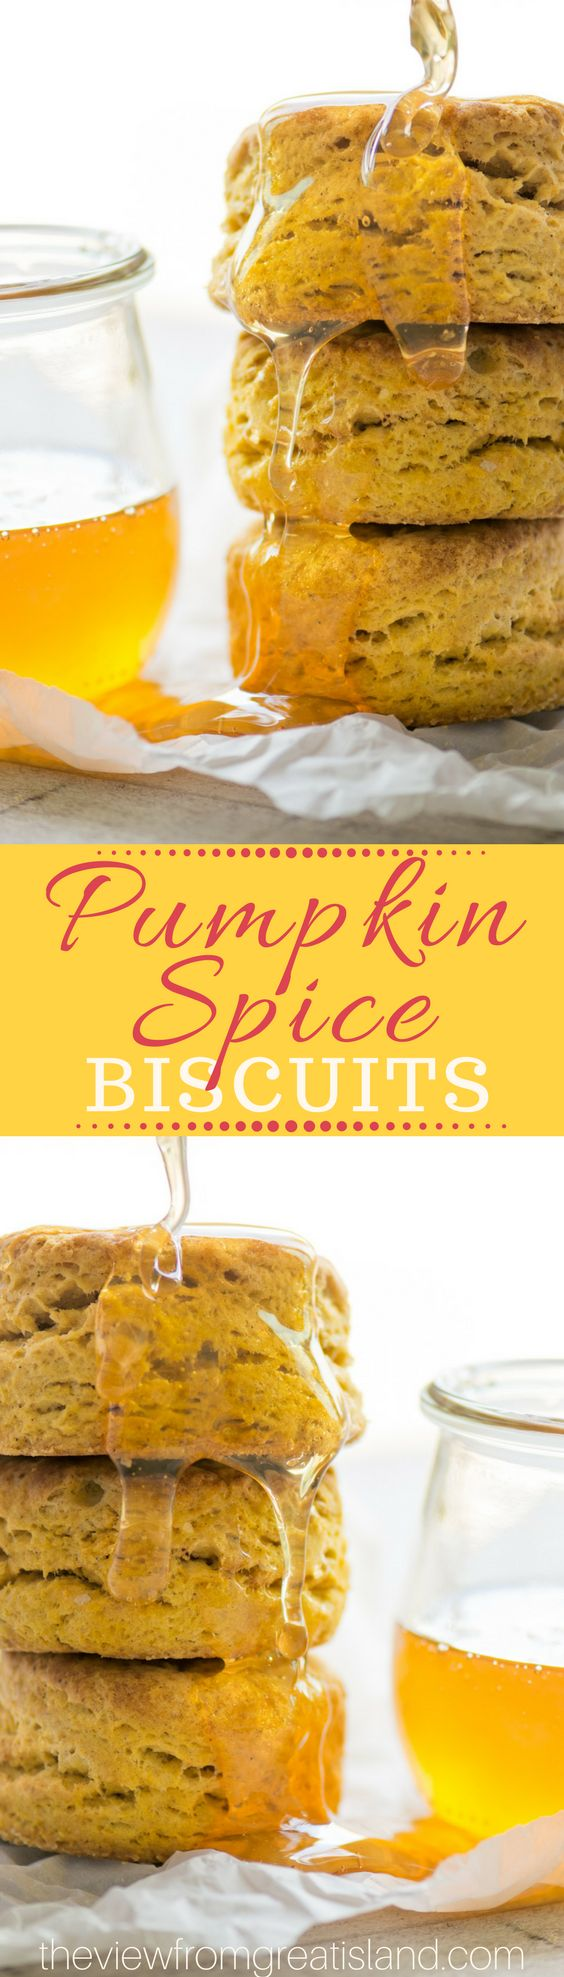 Pumpkin Spice Biscuits ~ these are the stuff pumpkin lovers' dreams are made of...tall, golden, flaky biscuits enriched with pumpkin puree and a hint ofa Fall spices. #bestbiscuits #pumpkinbiscuits #pumpkinbread #fallbread #Thanksgiving #buttermilkbiscuits #quickbread #Easybiscuits